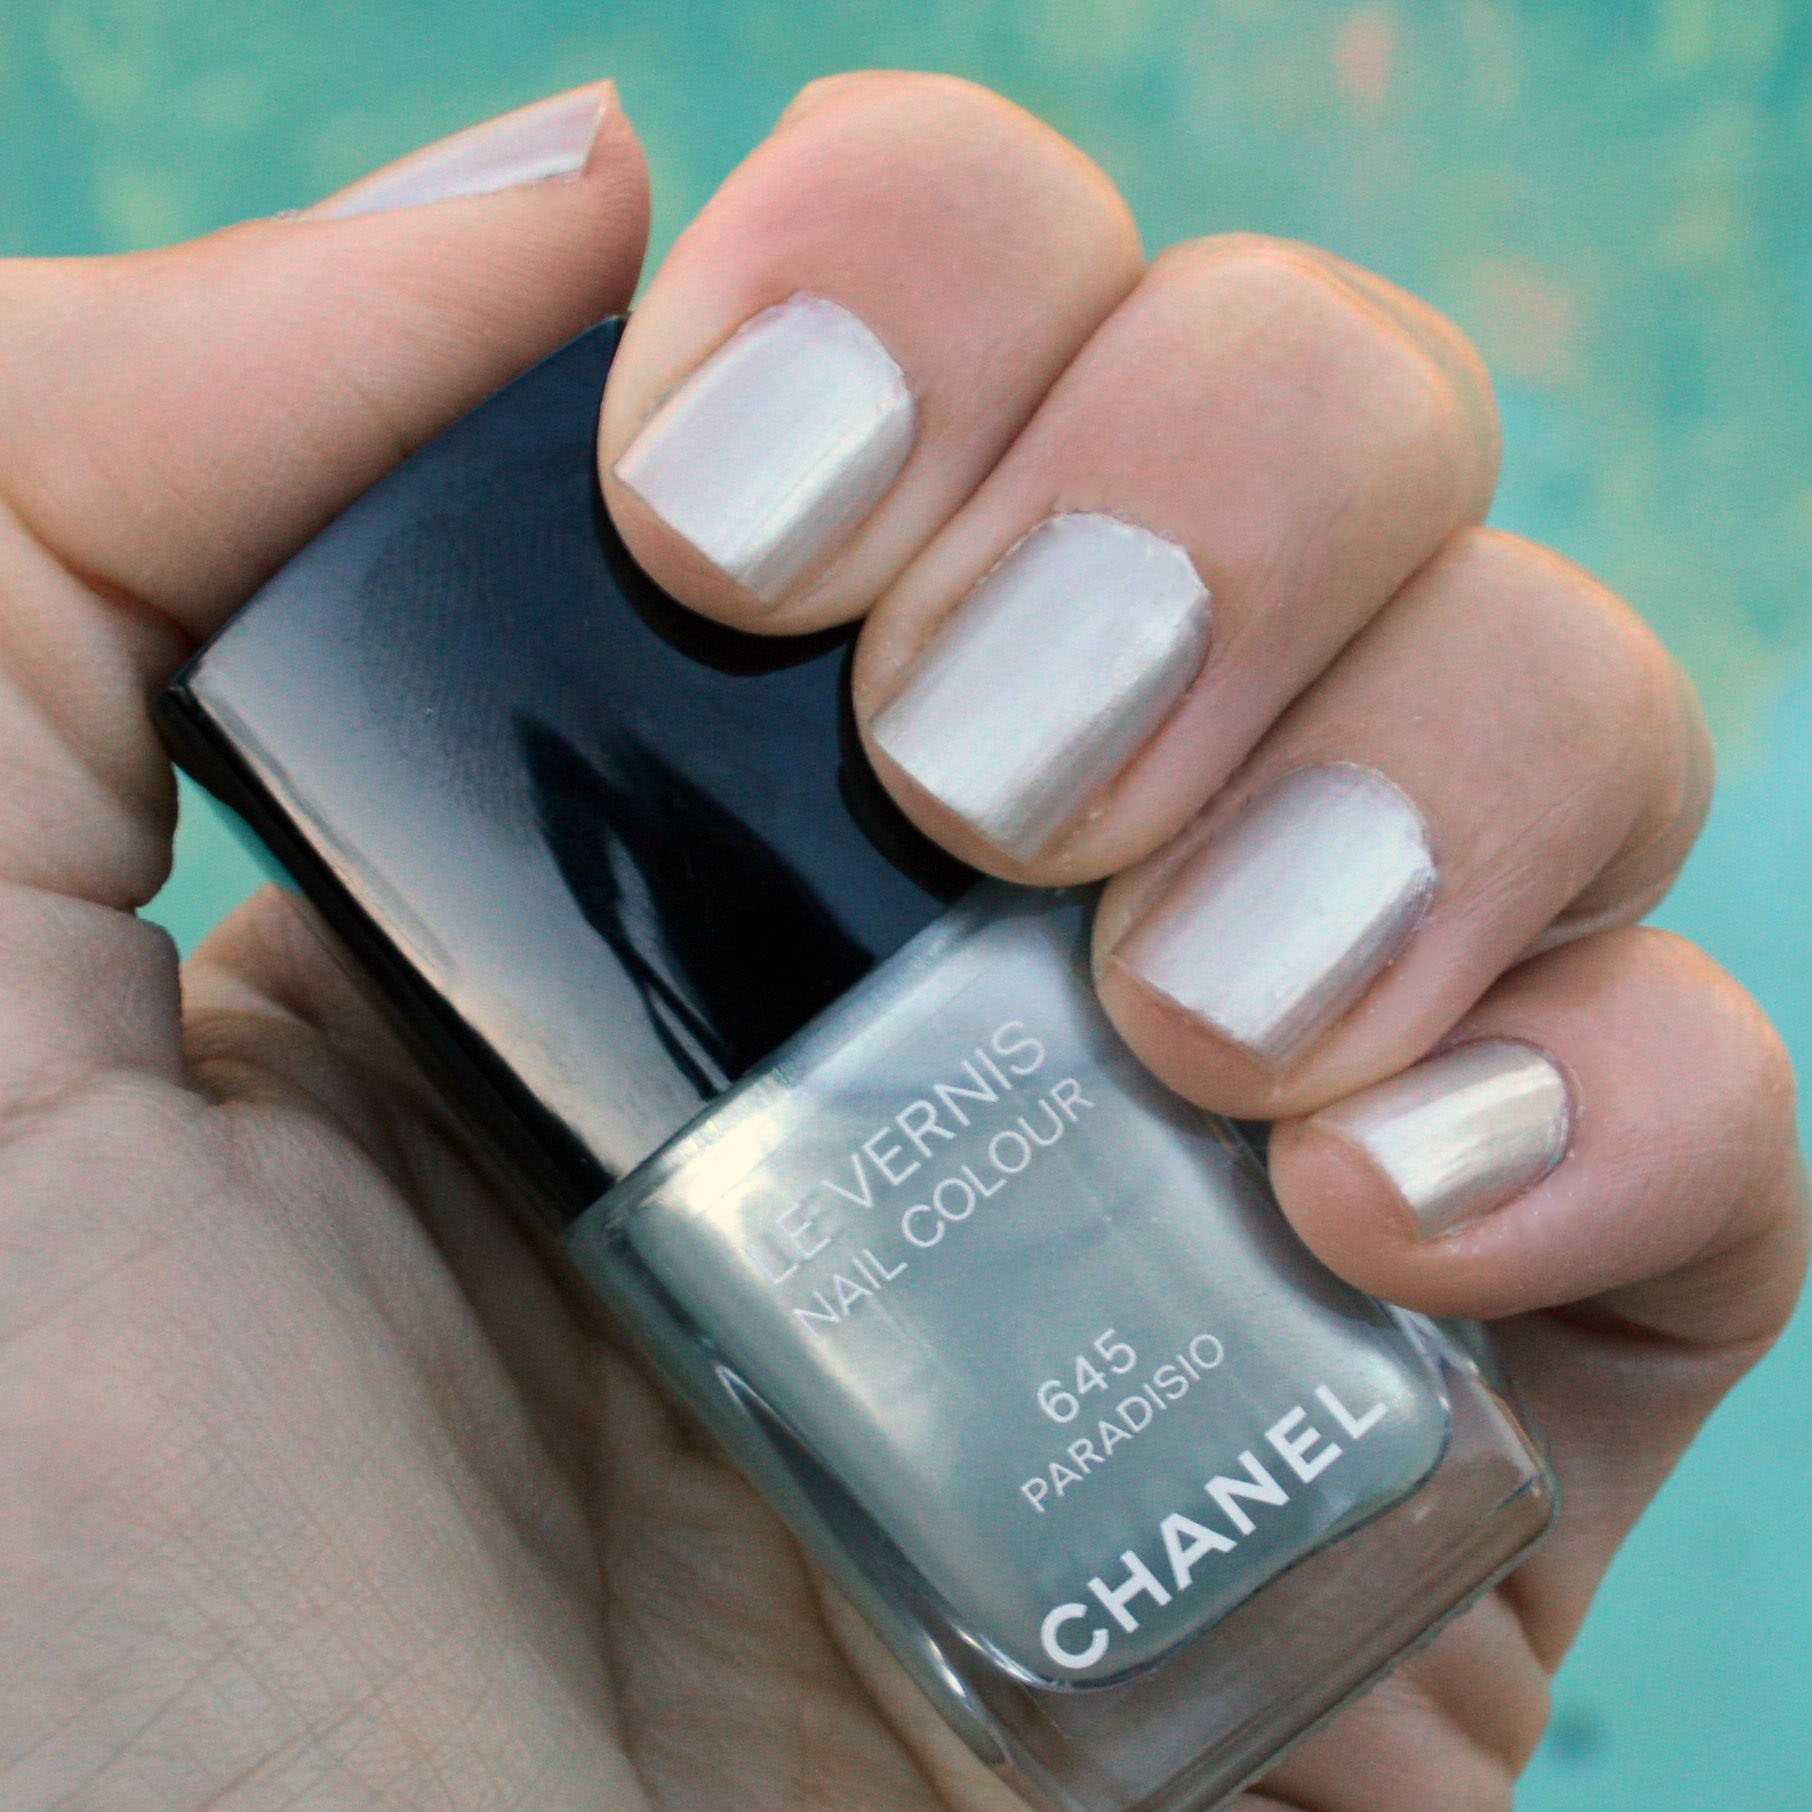 Chanel Paradisio nail polish for spring 2015 | Bay Area Fashionista